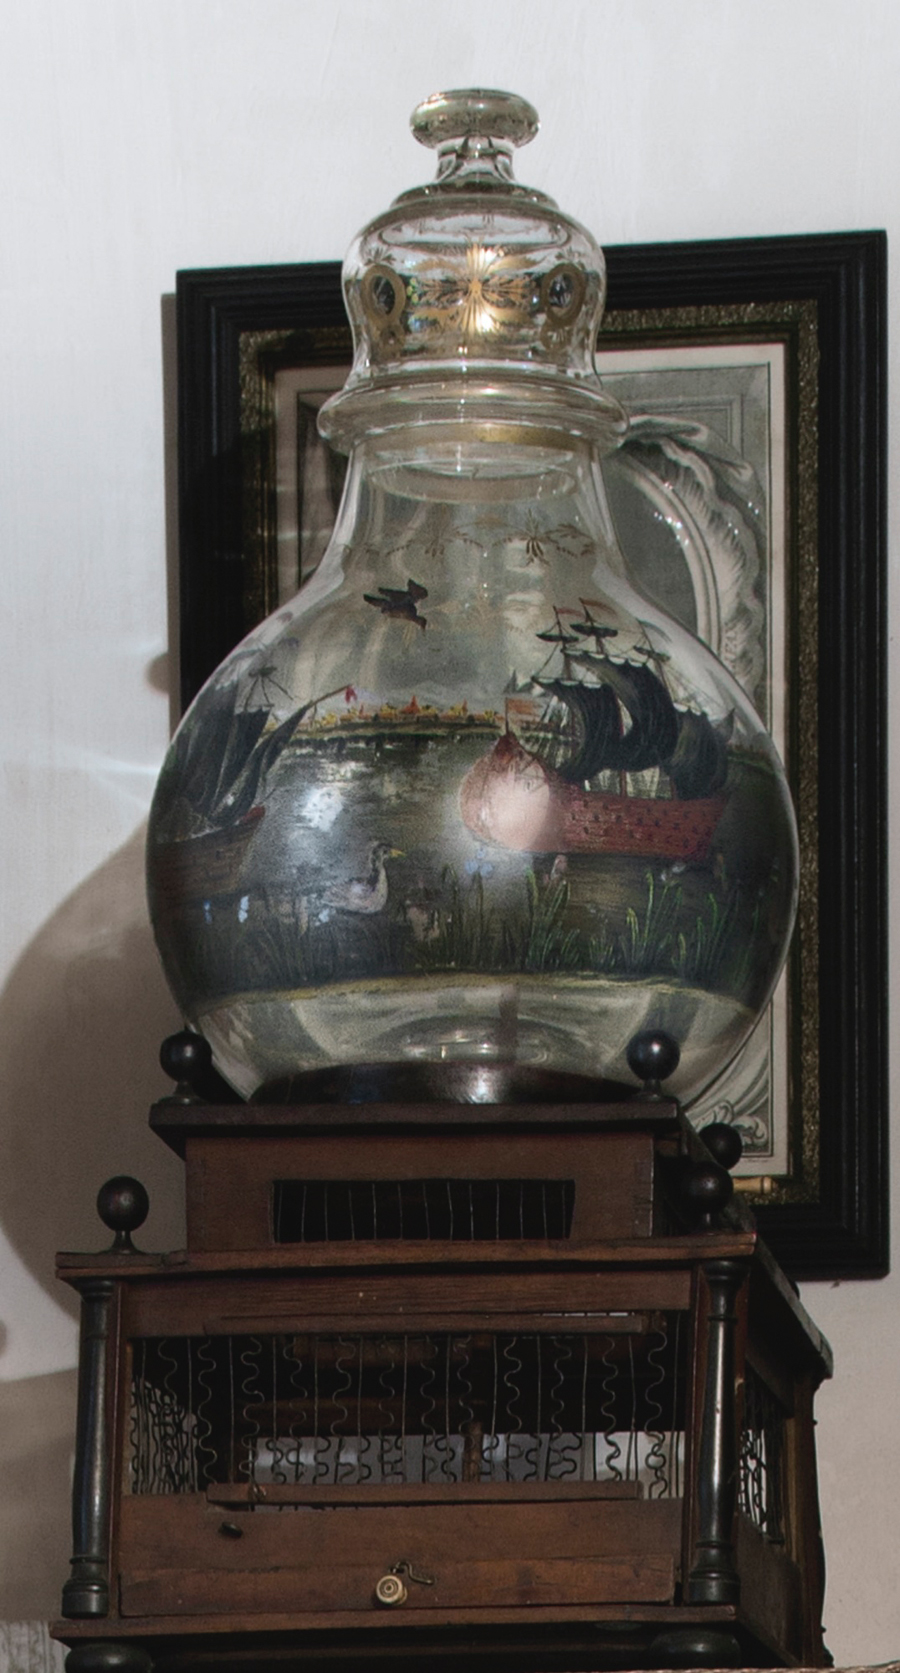 Seasoned collectors with an intellectual bent, the Schorsches were drawn to rare, interesting pieces. One example was this early Nineteenth Century Dutch paint-decorated glass fishbowl and fruitwood birdcage, $ 60,000 ($ 20/30,000) measuring 27½ inches tall.